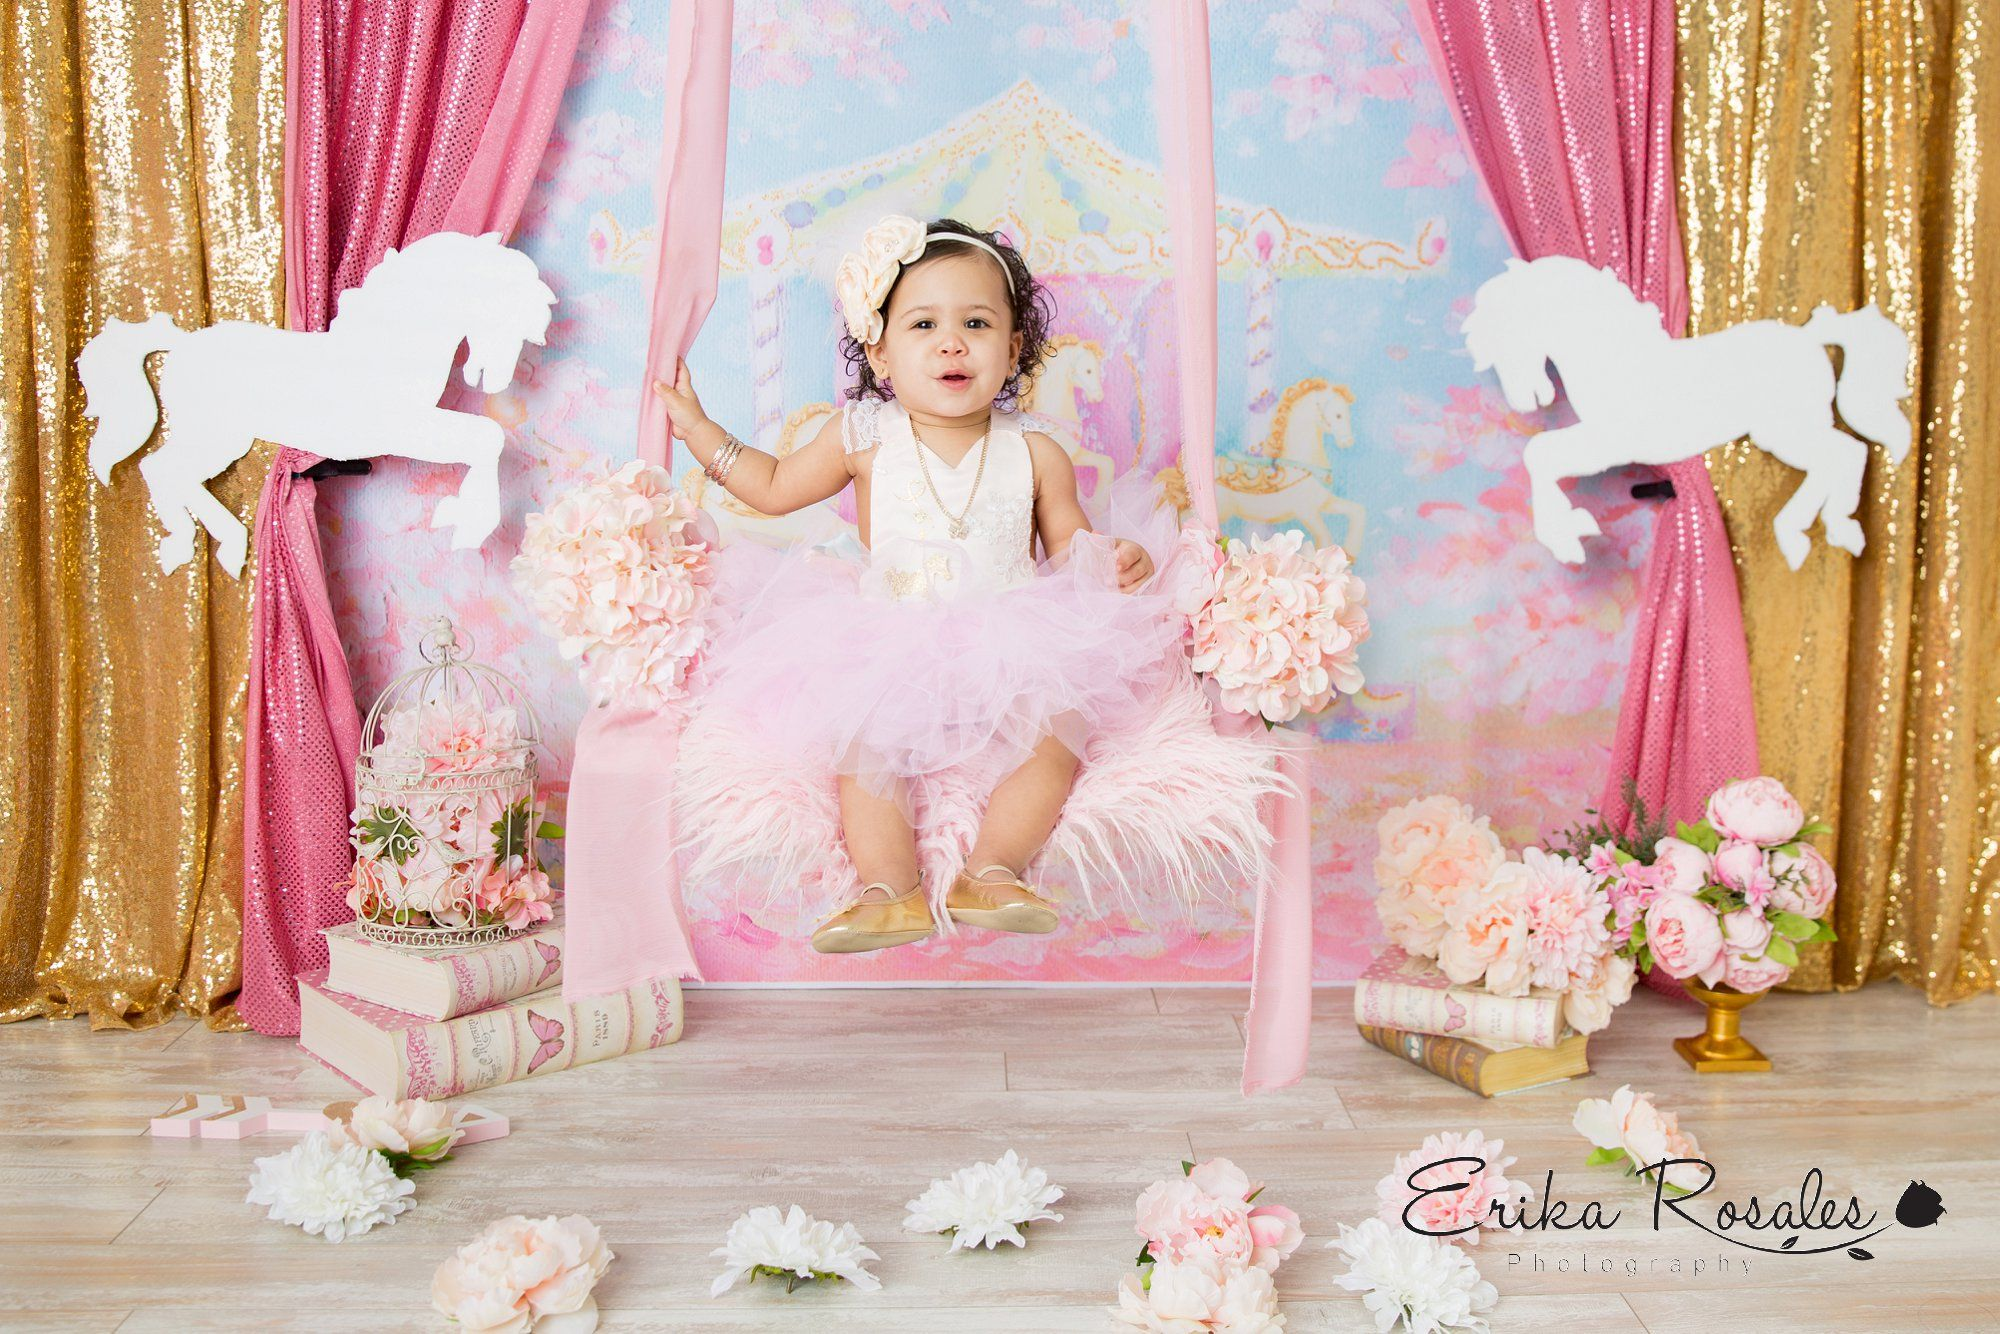 Carousel photo session first birthday with swing flower pink white carousel photo session first birthday with swing flower pink white and gold first izmirmasajfo Gallery